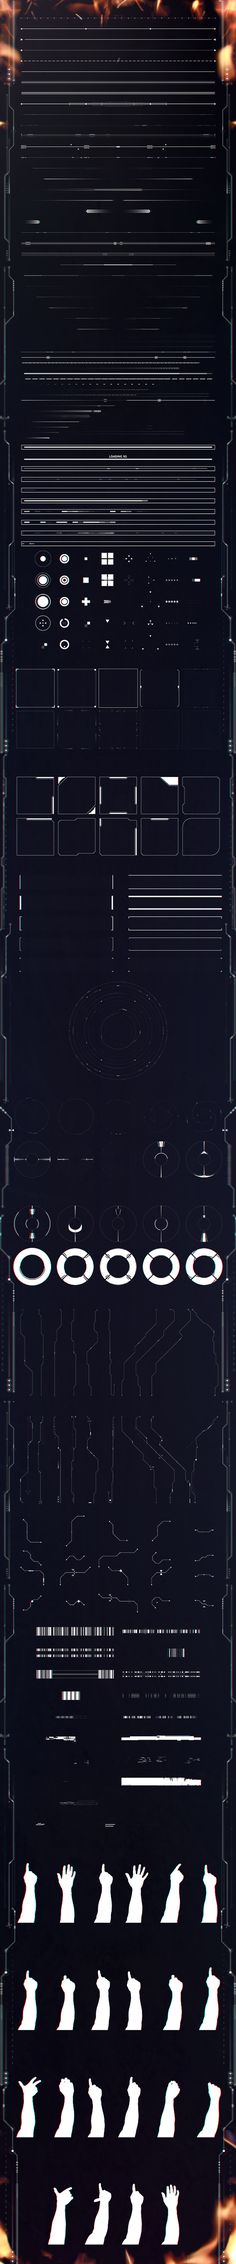 Eclipse HUD Elements on Behance